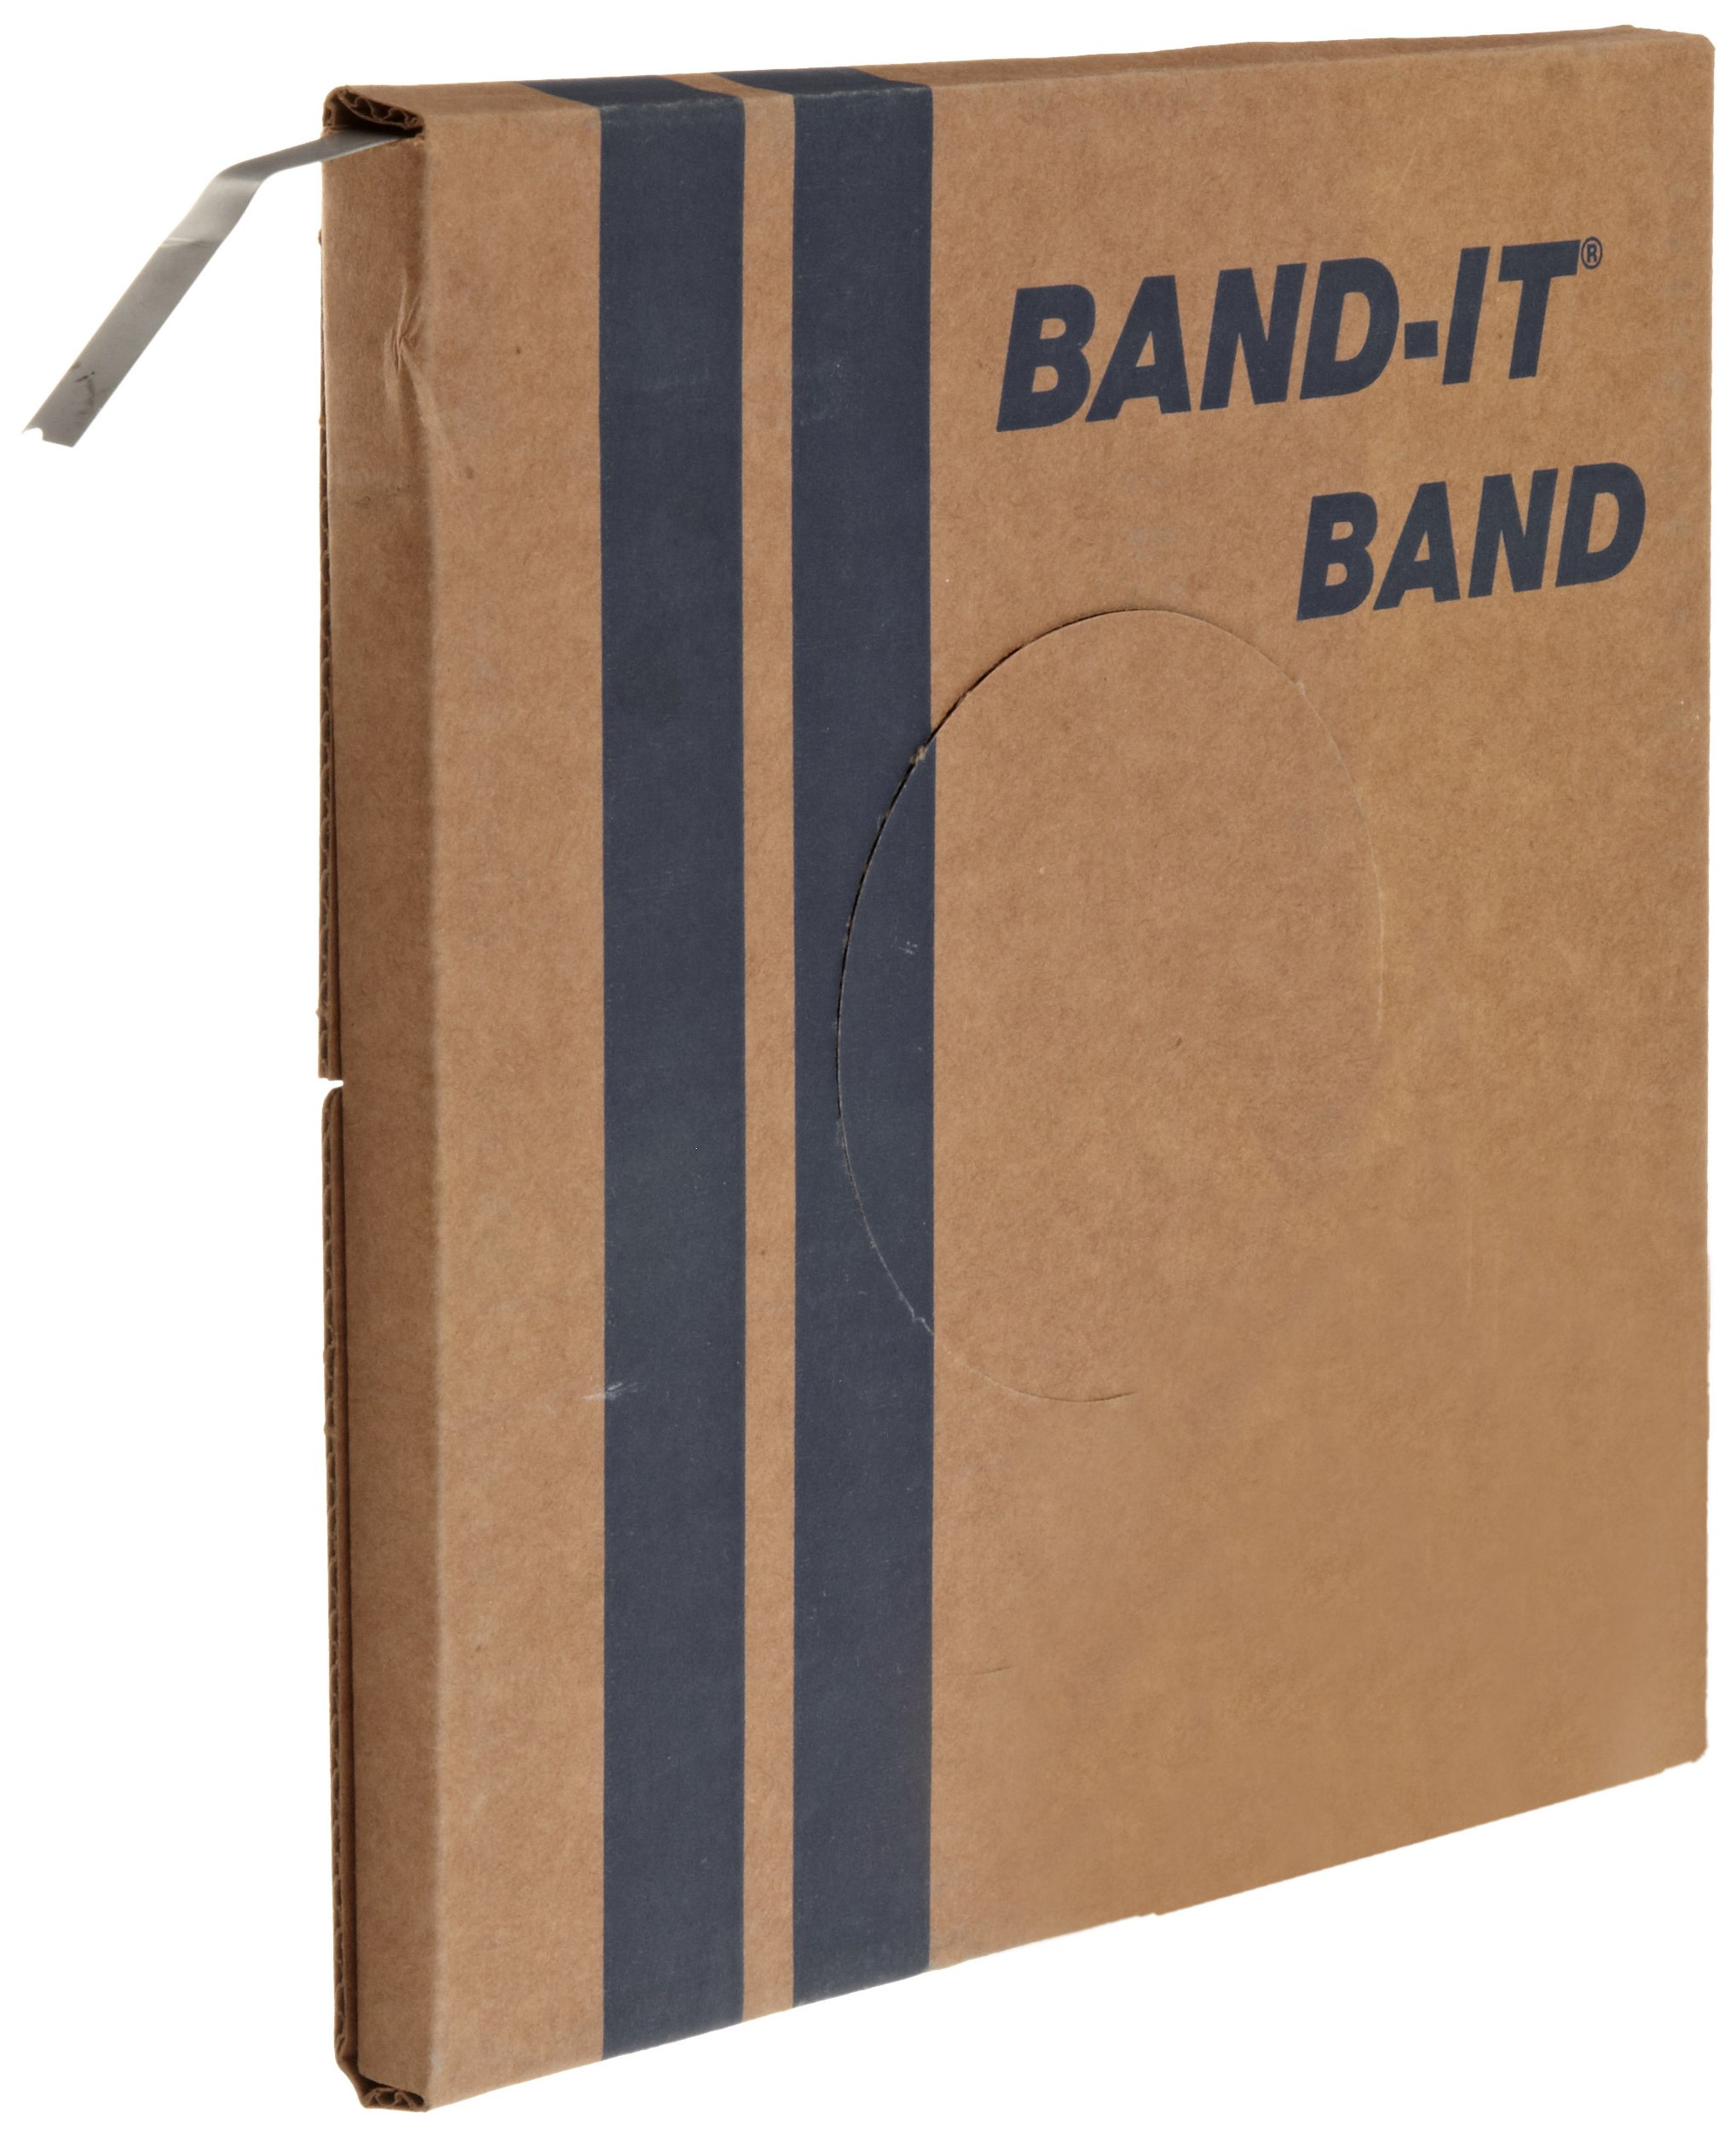 BAND-IT VALU-STRAP Band C13399, 200/300 Stainless Steel, 3/8'' wide x 0.015'' thick (100 Foot Roll)